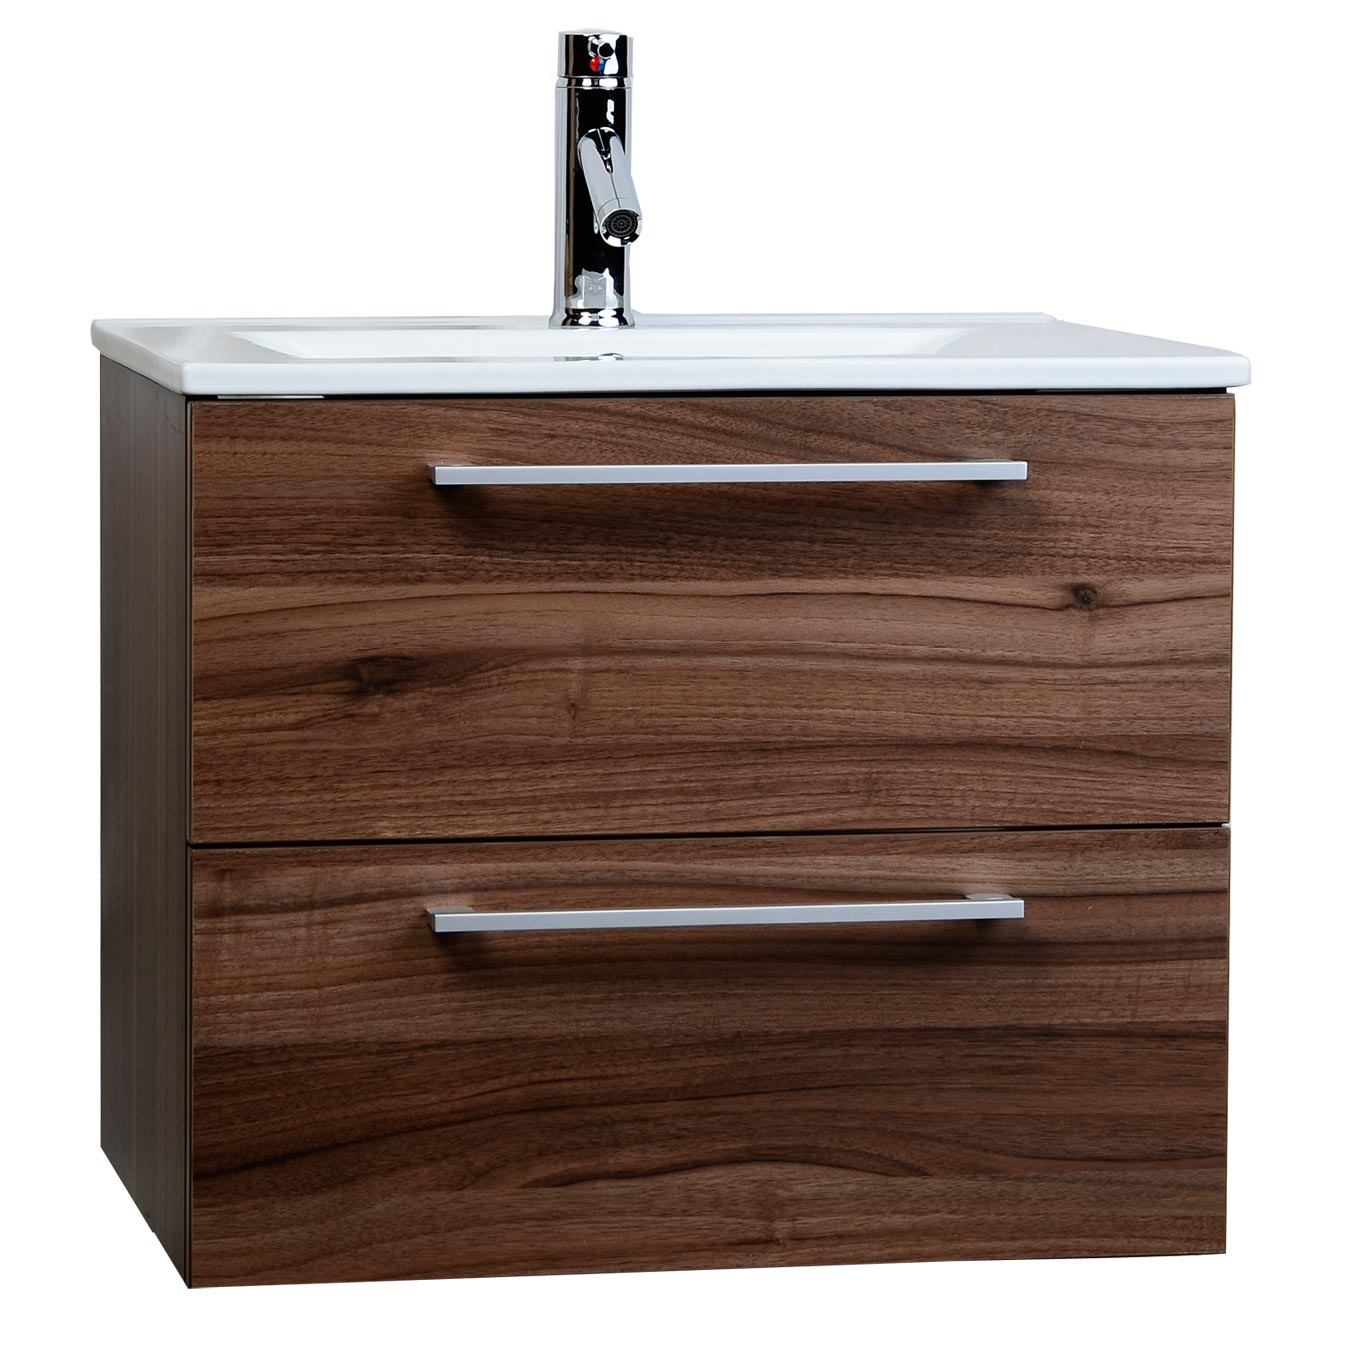 caen 24 wall mounted single bathroom vanity set in walnut optional